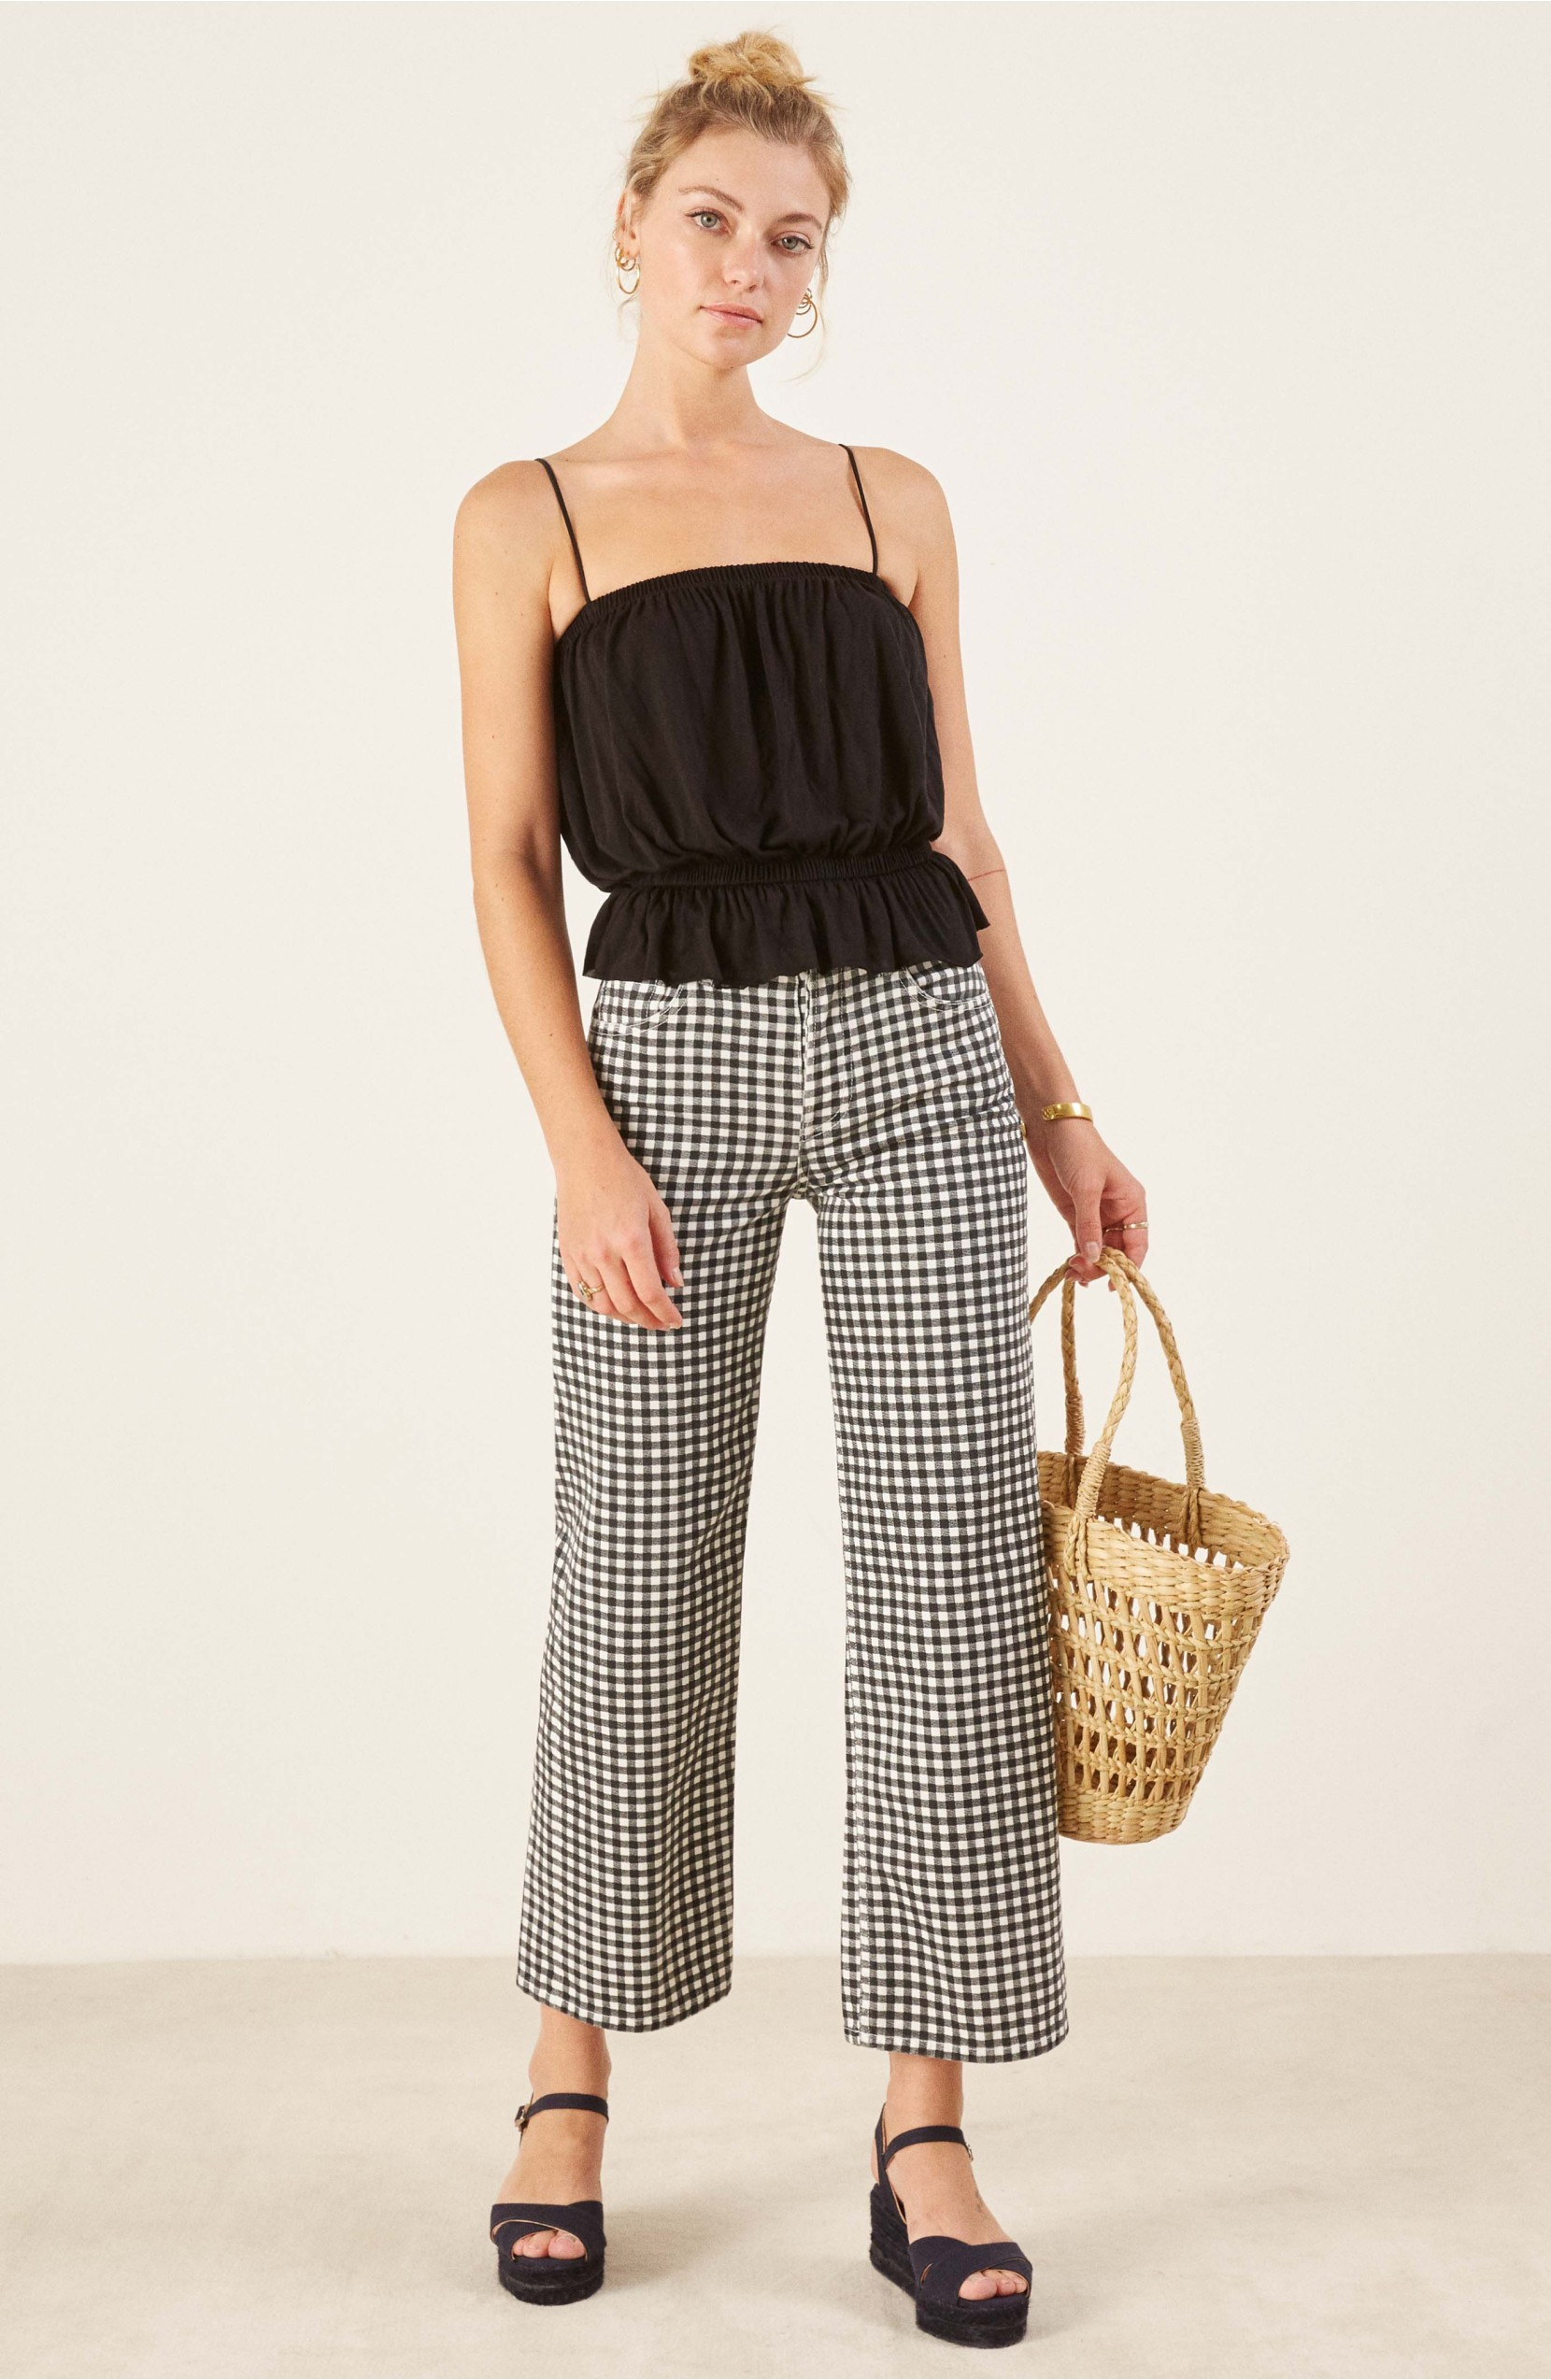 Gingham High-Waist Crop Jeans Straw Basket Bag